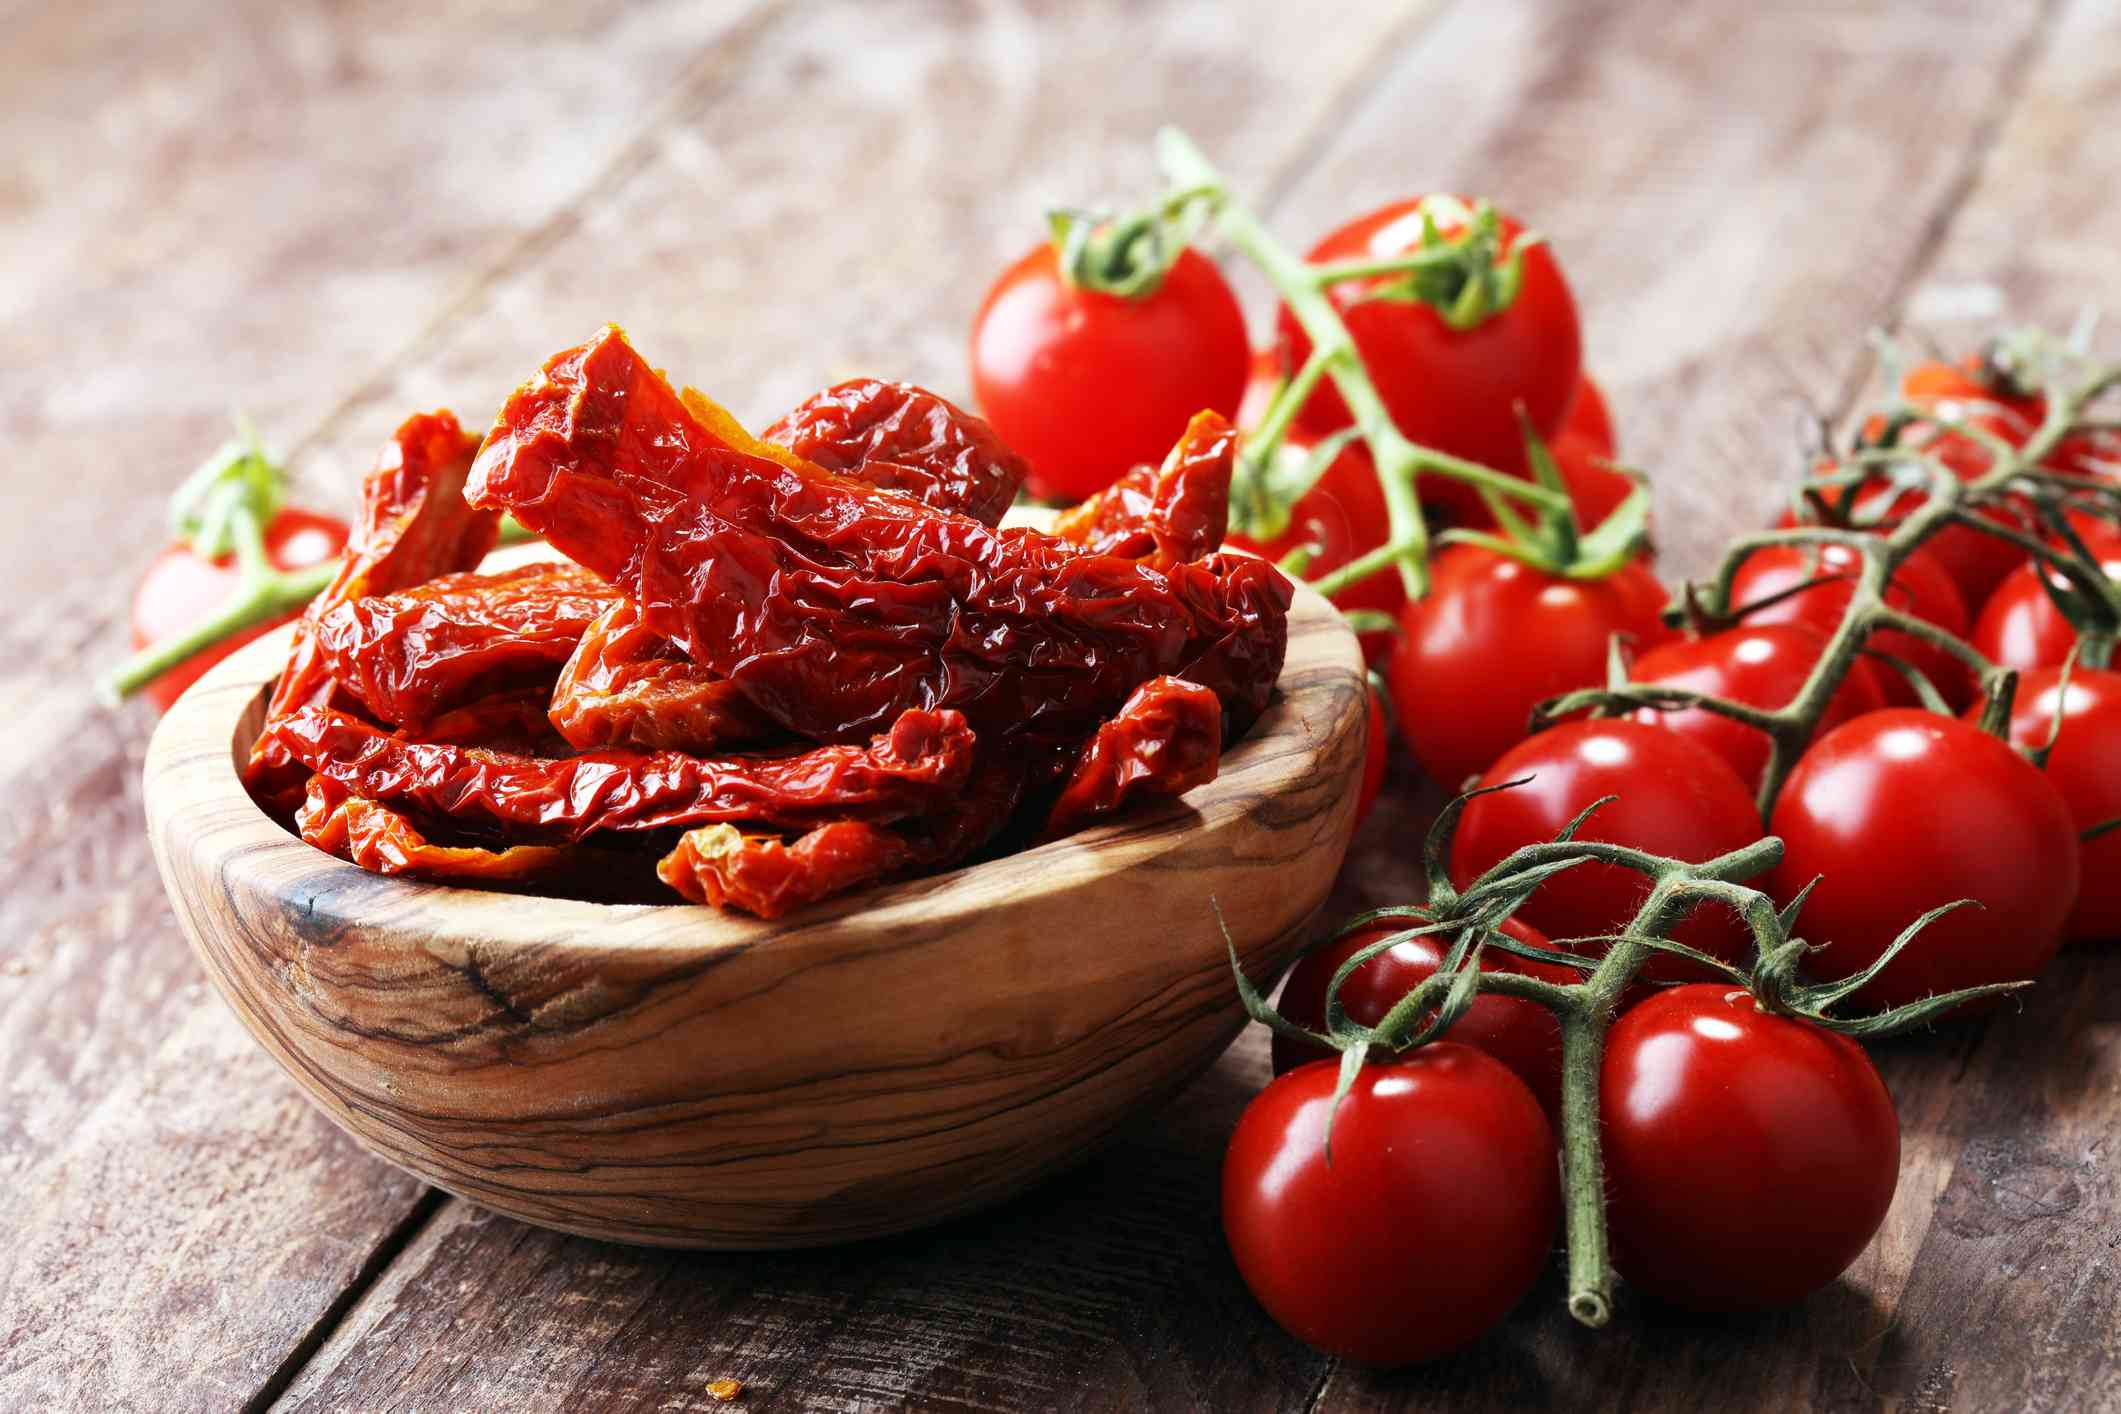 Sun-dried tomatoes and tomatoes on the vine